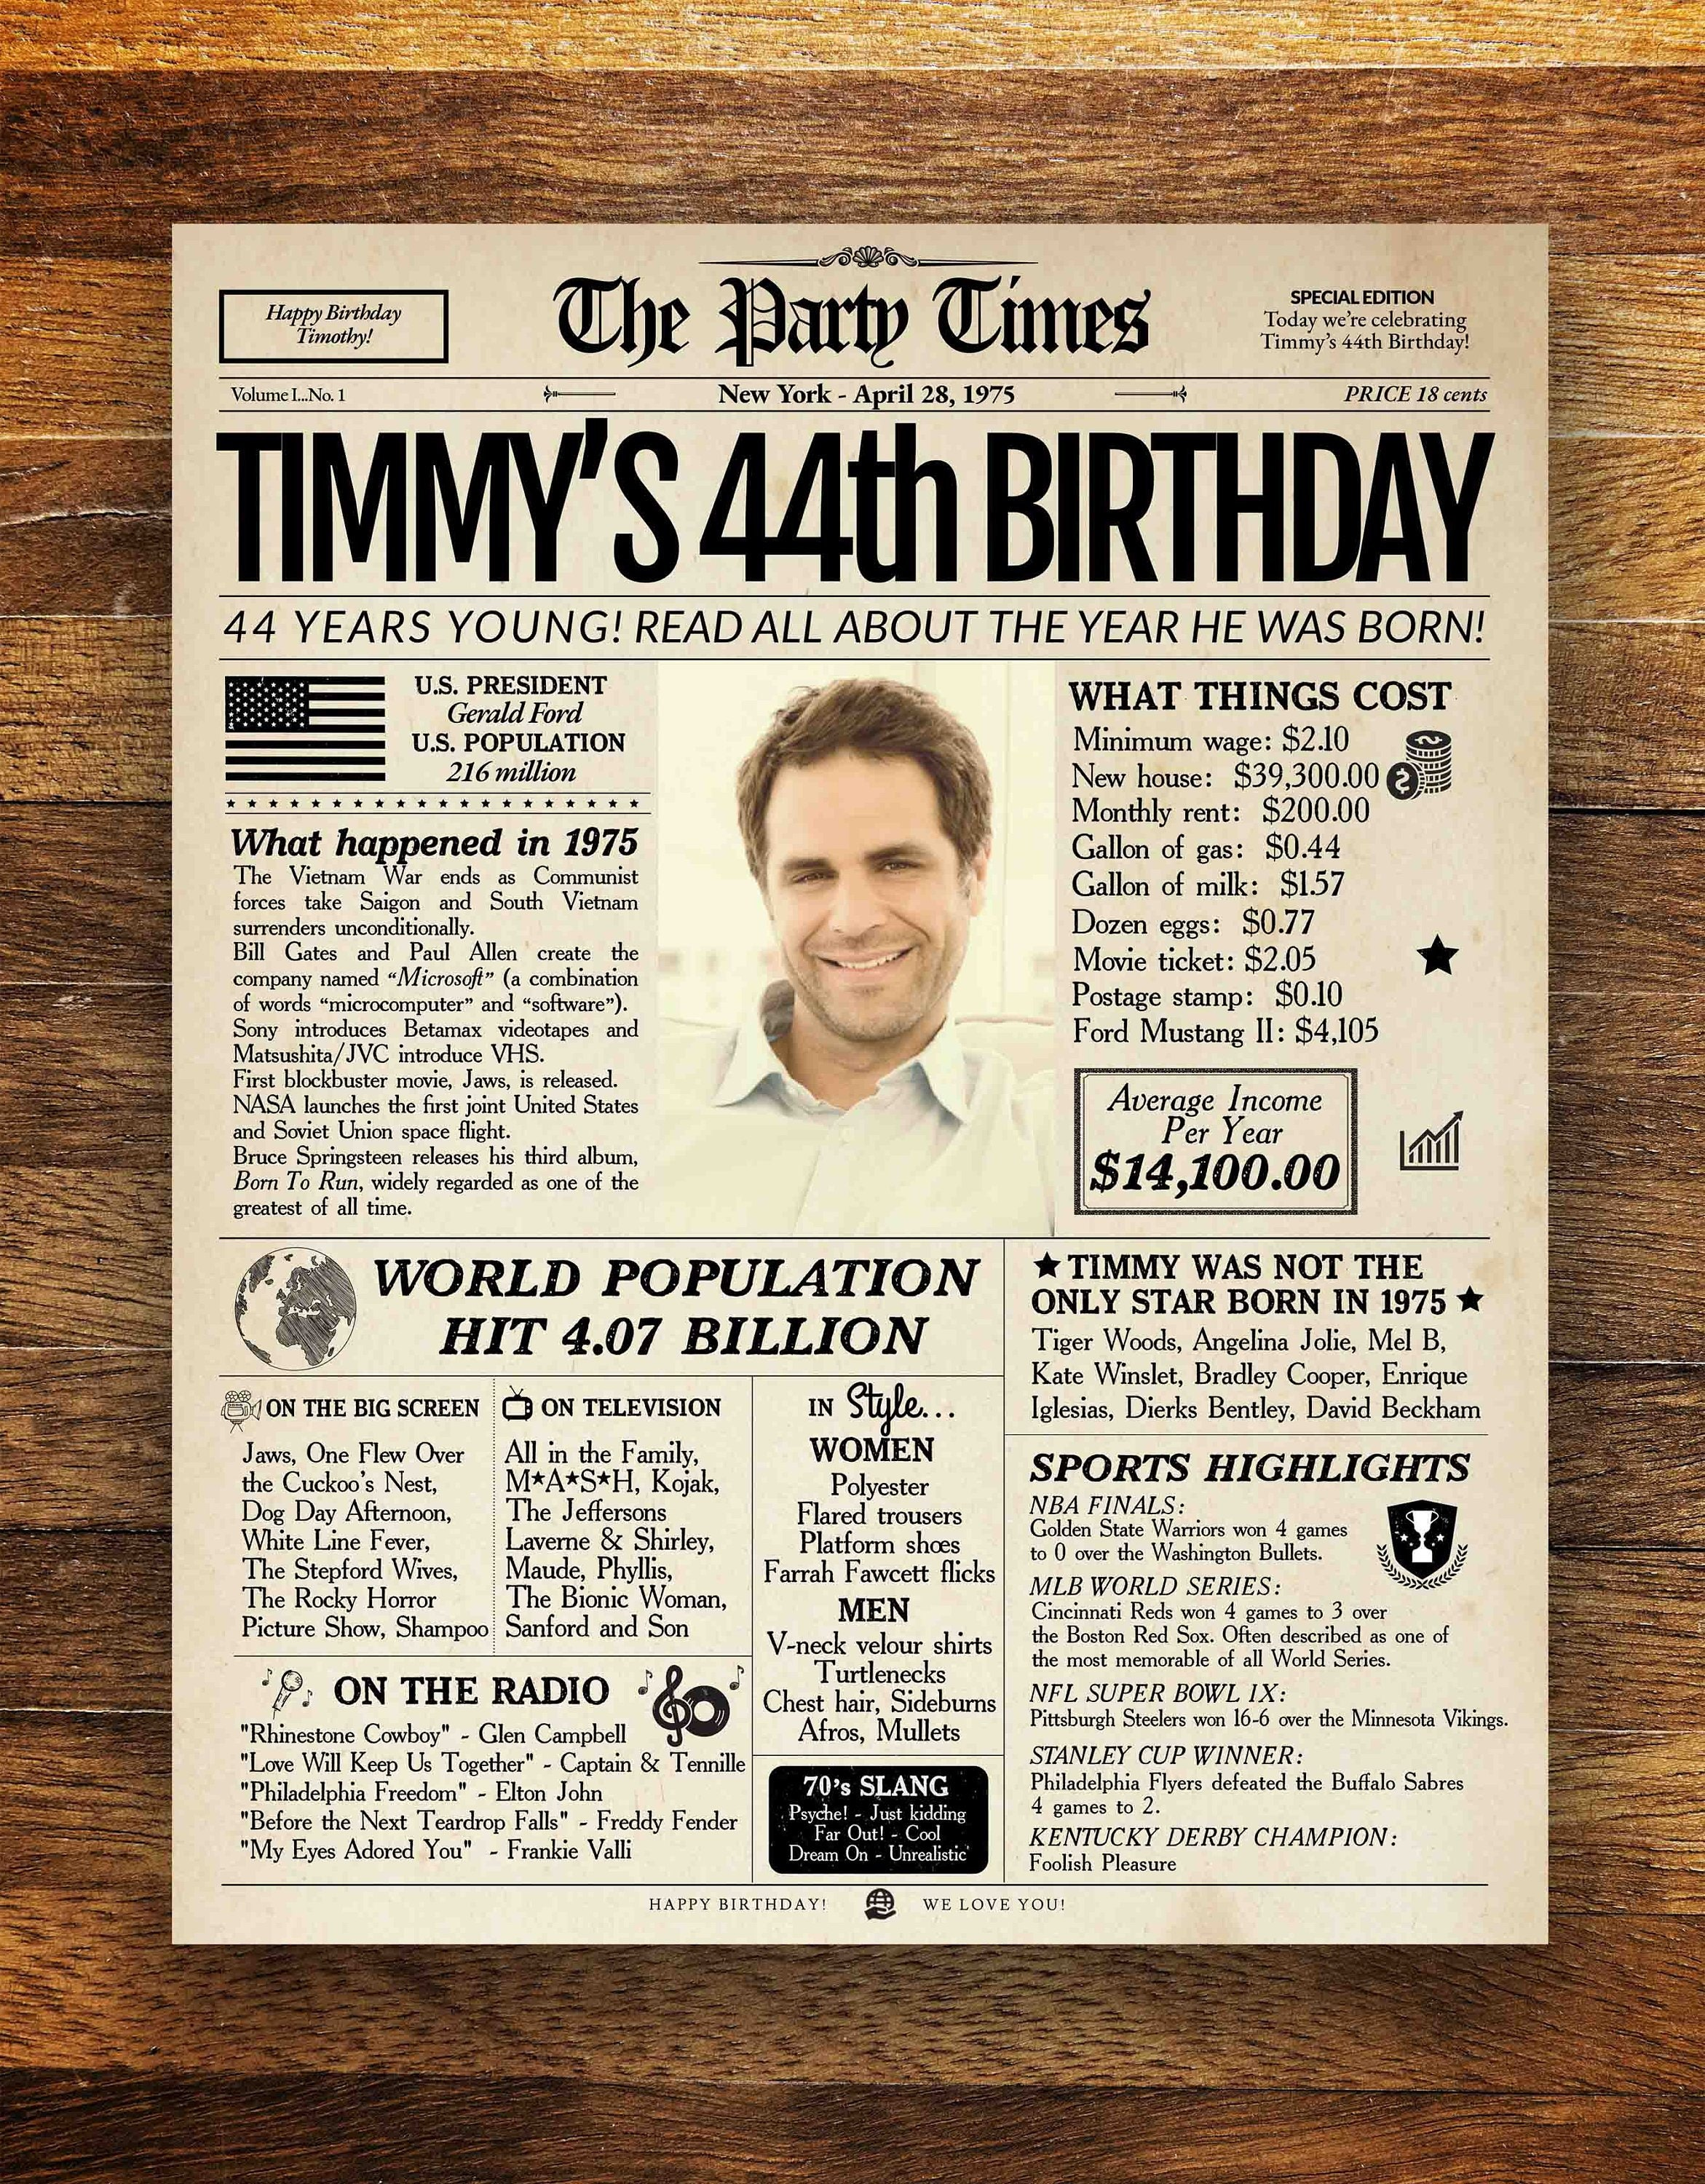 44th Birthday Newspaper Poster Gift For Her Of Him 44 Years Ago Back In 1975 Sign Party Decor